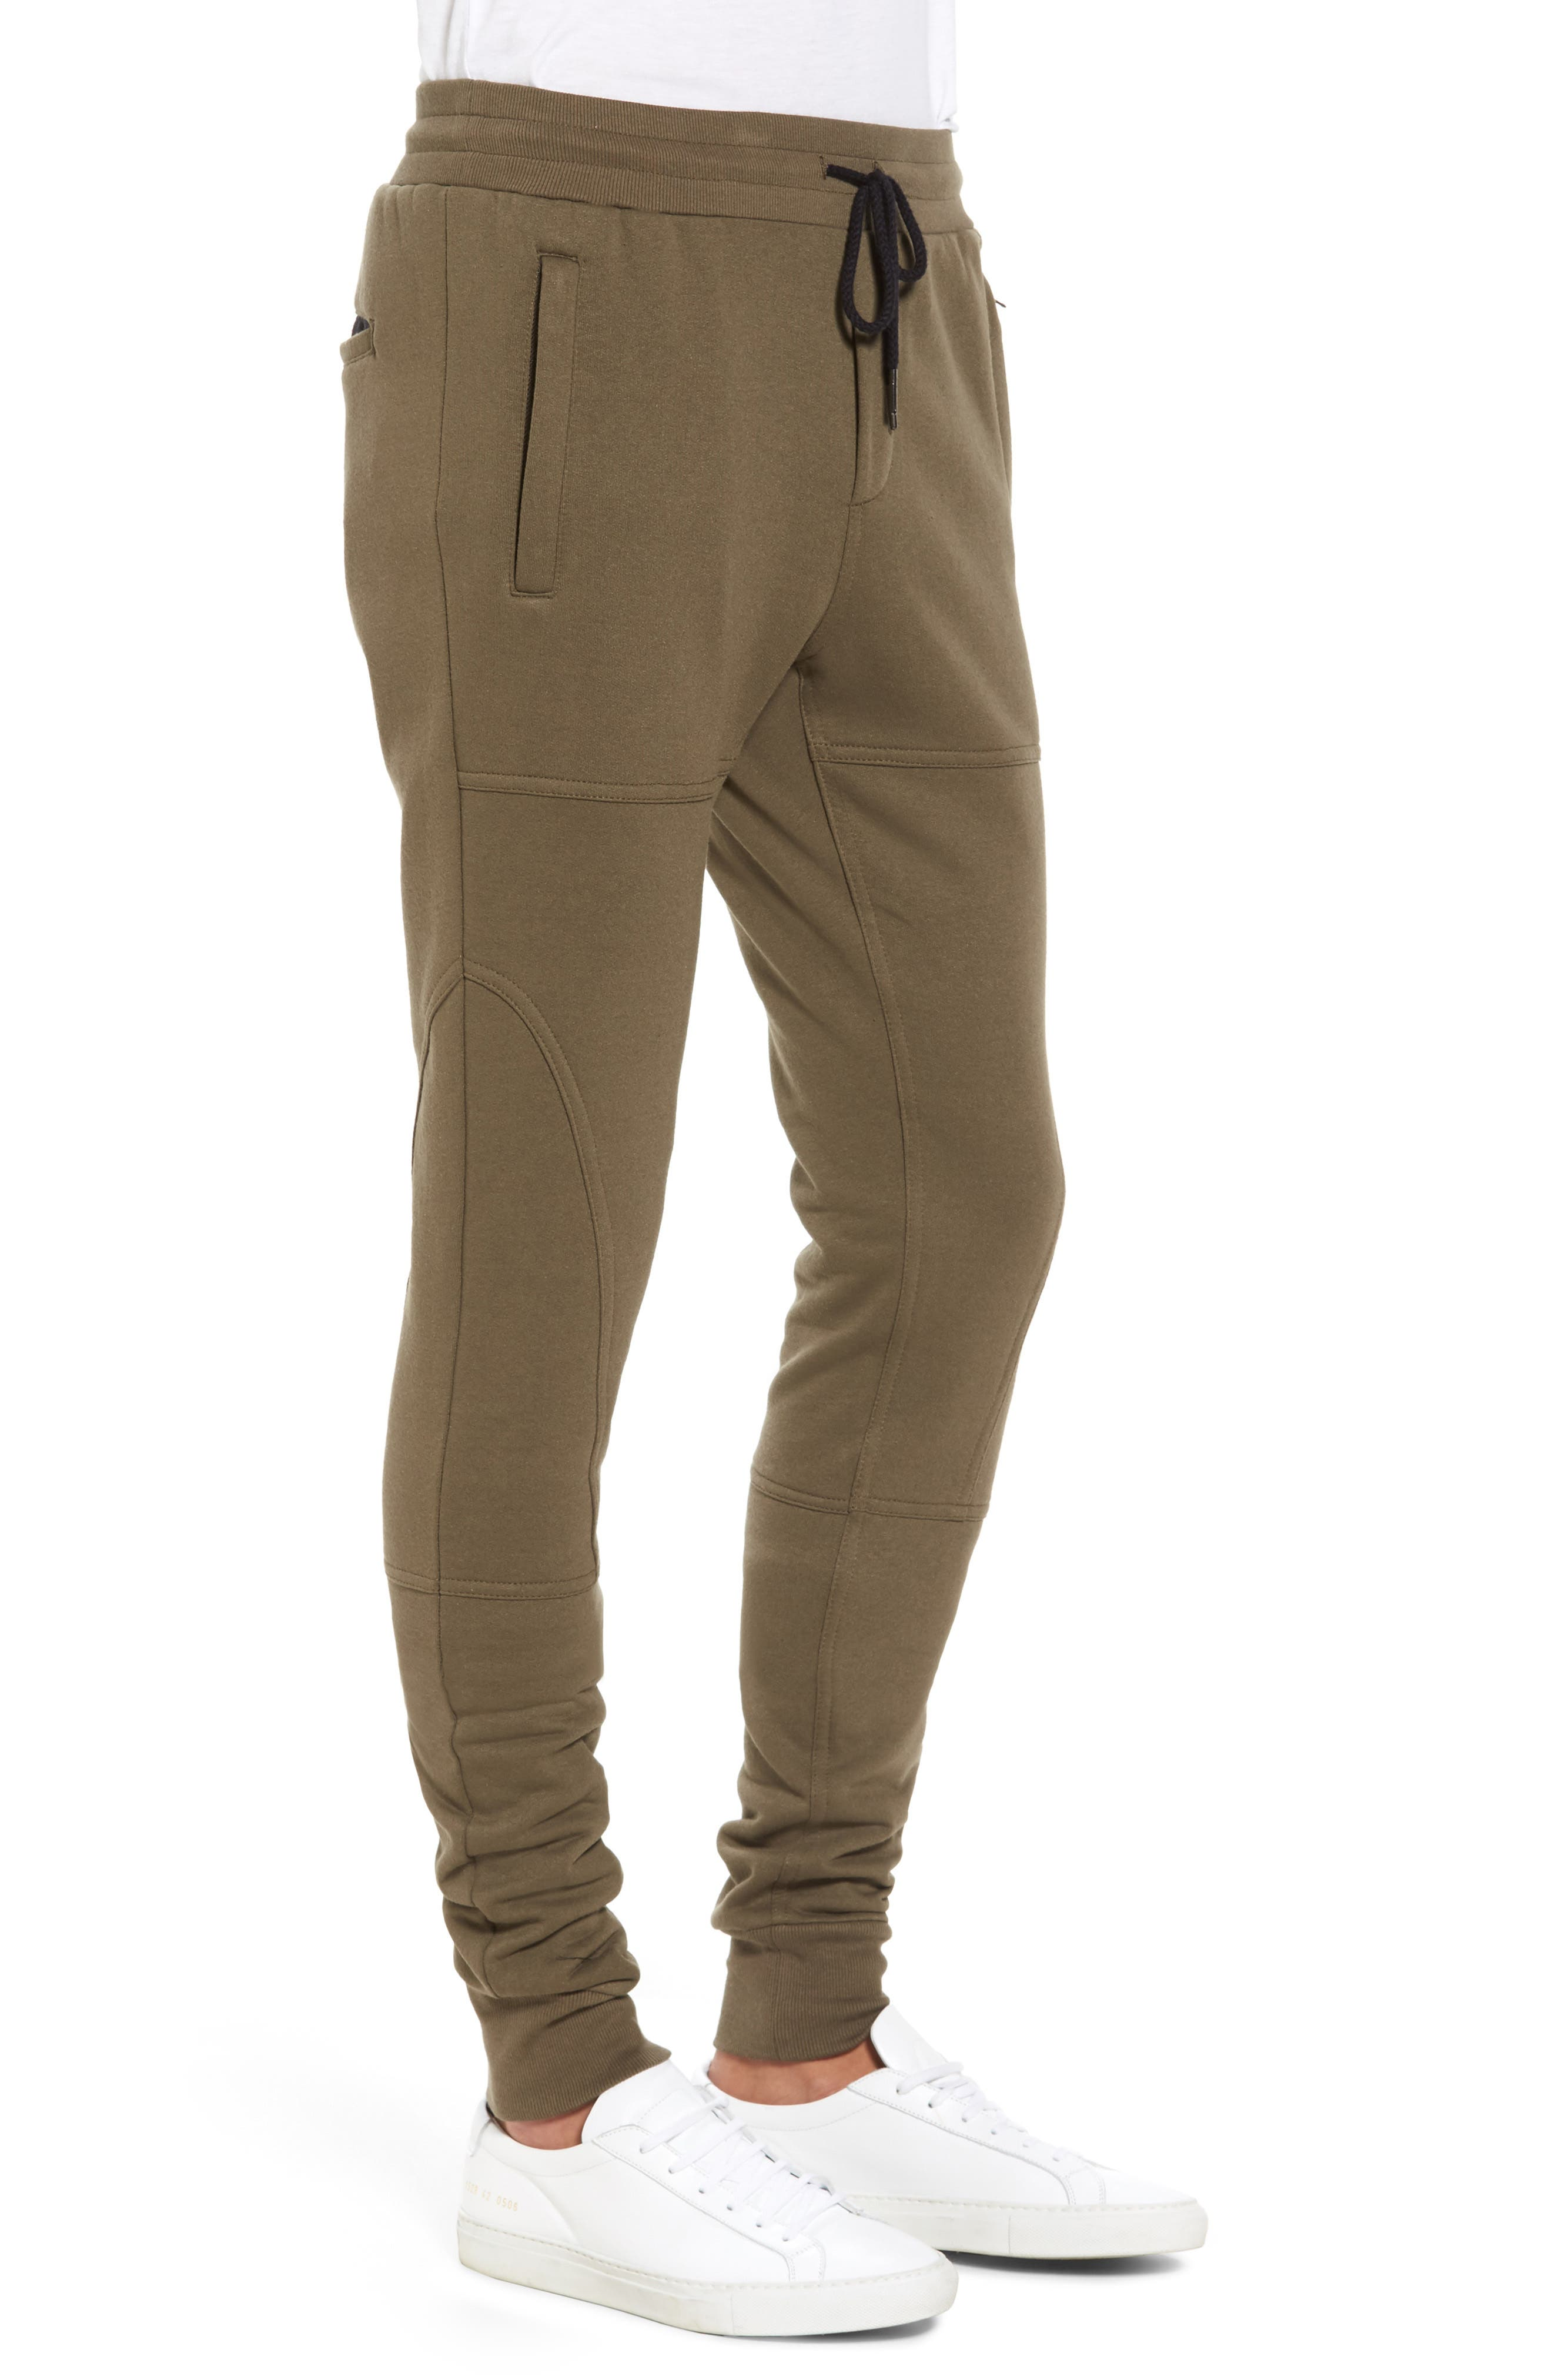 French Terry Sweatpants,                             Alternate thumbnail 3, color,                             Army